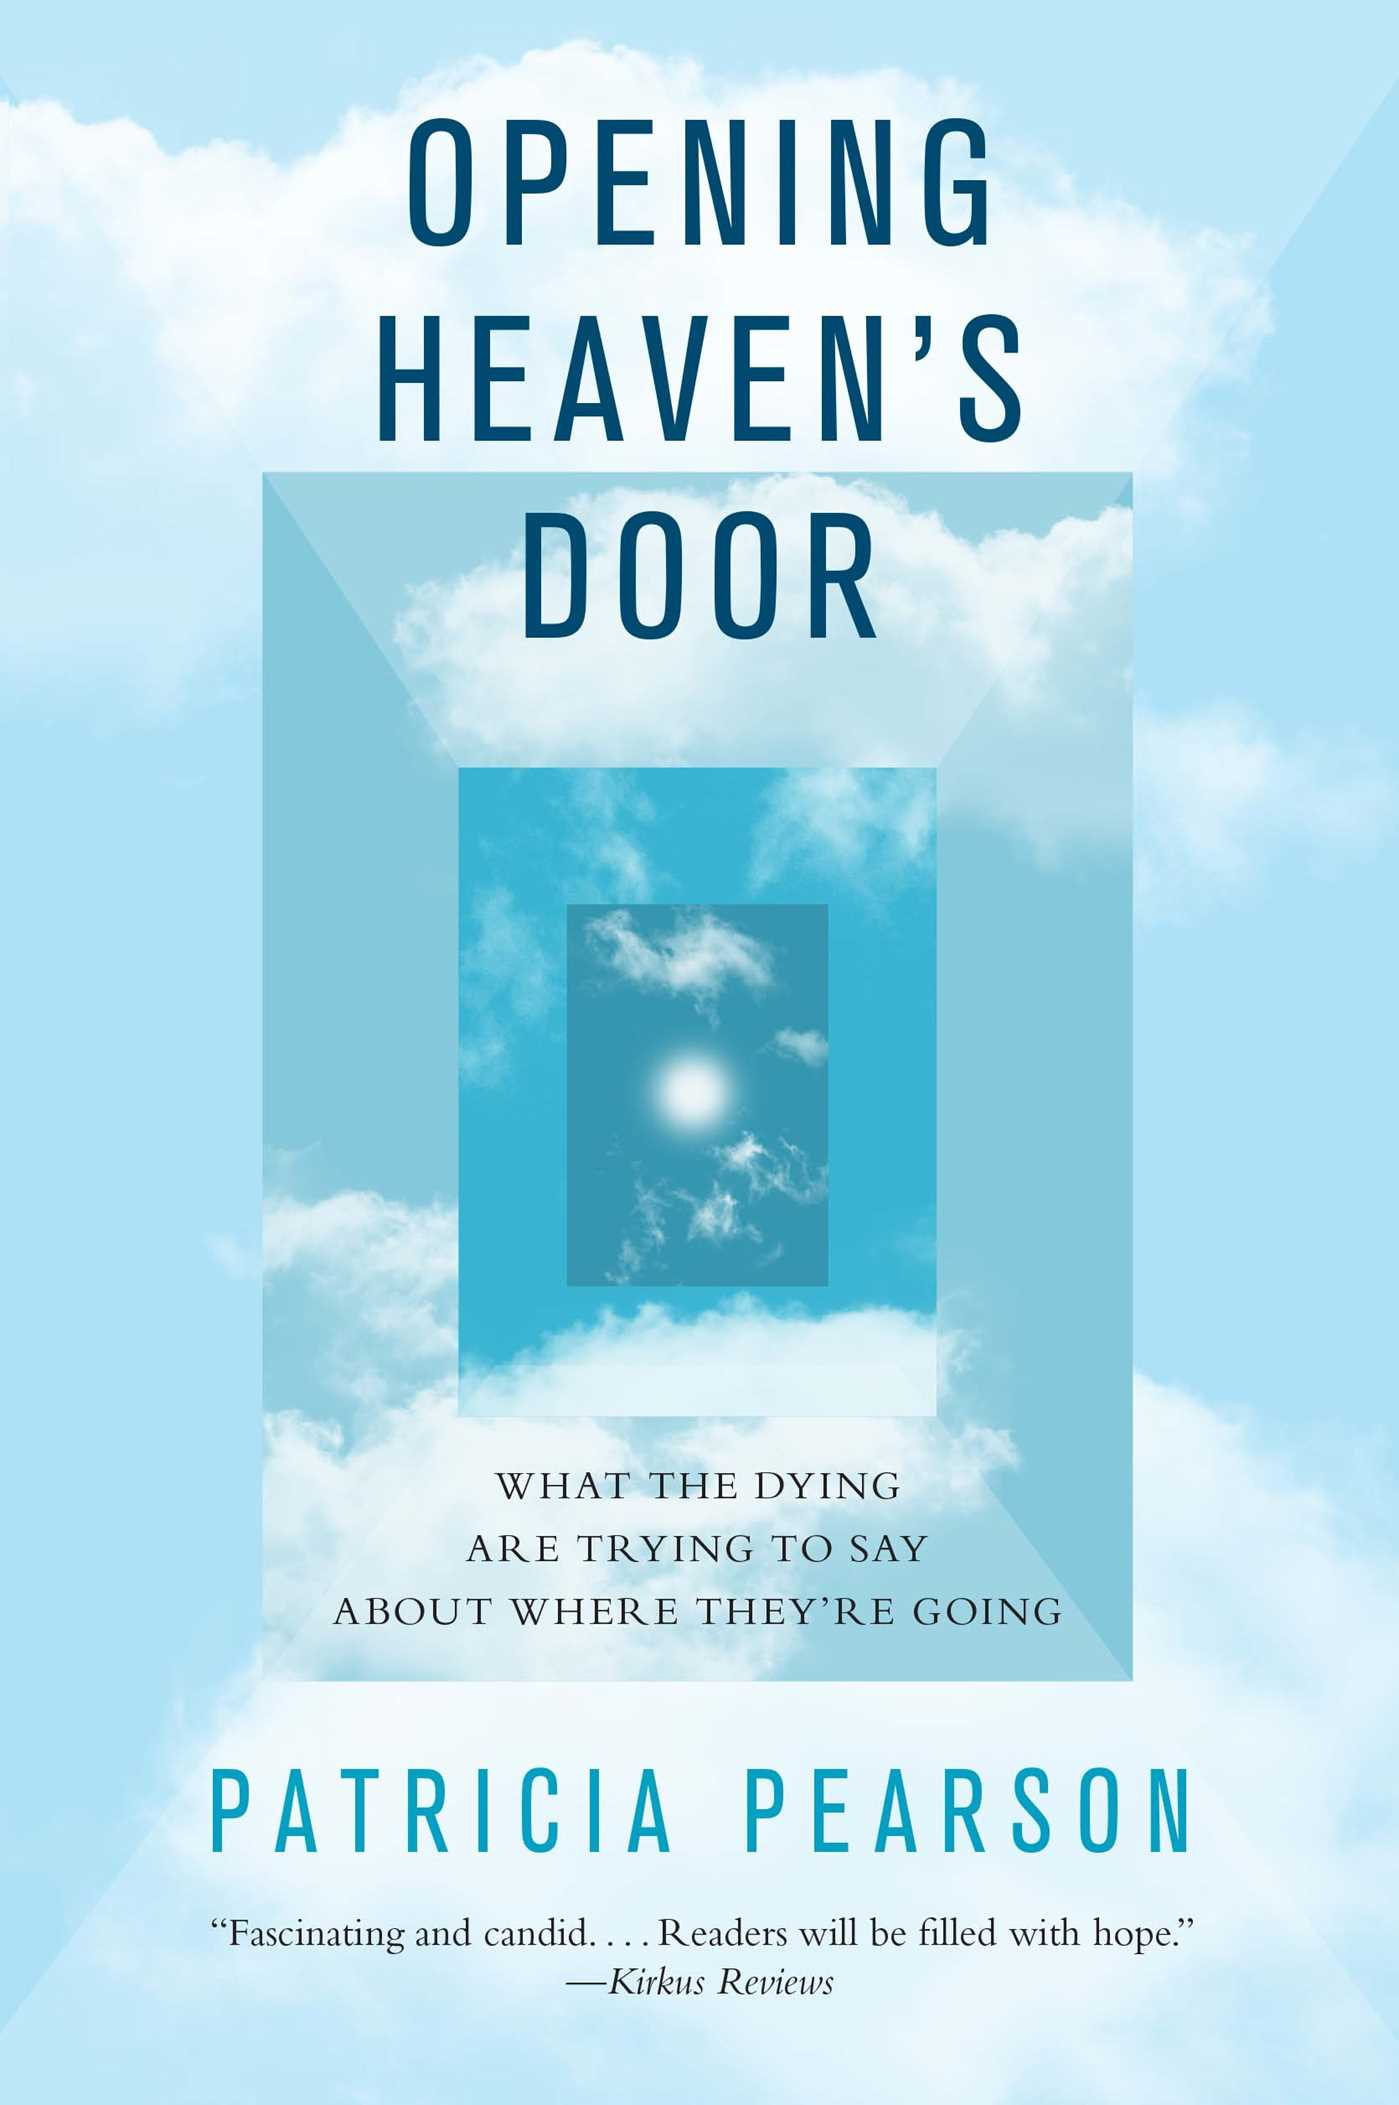 Opening heavens door book by patricia pearson official opening heavens door book by patricia pearson official publisher page simon schuster fandeluxe Images